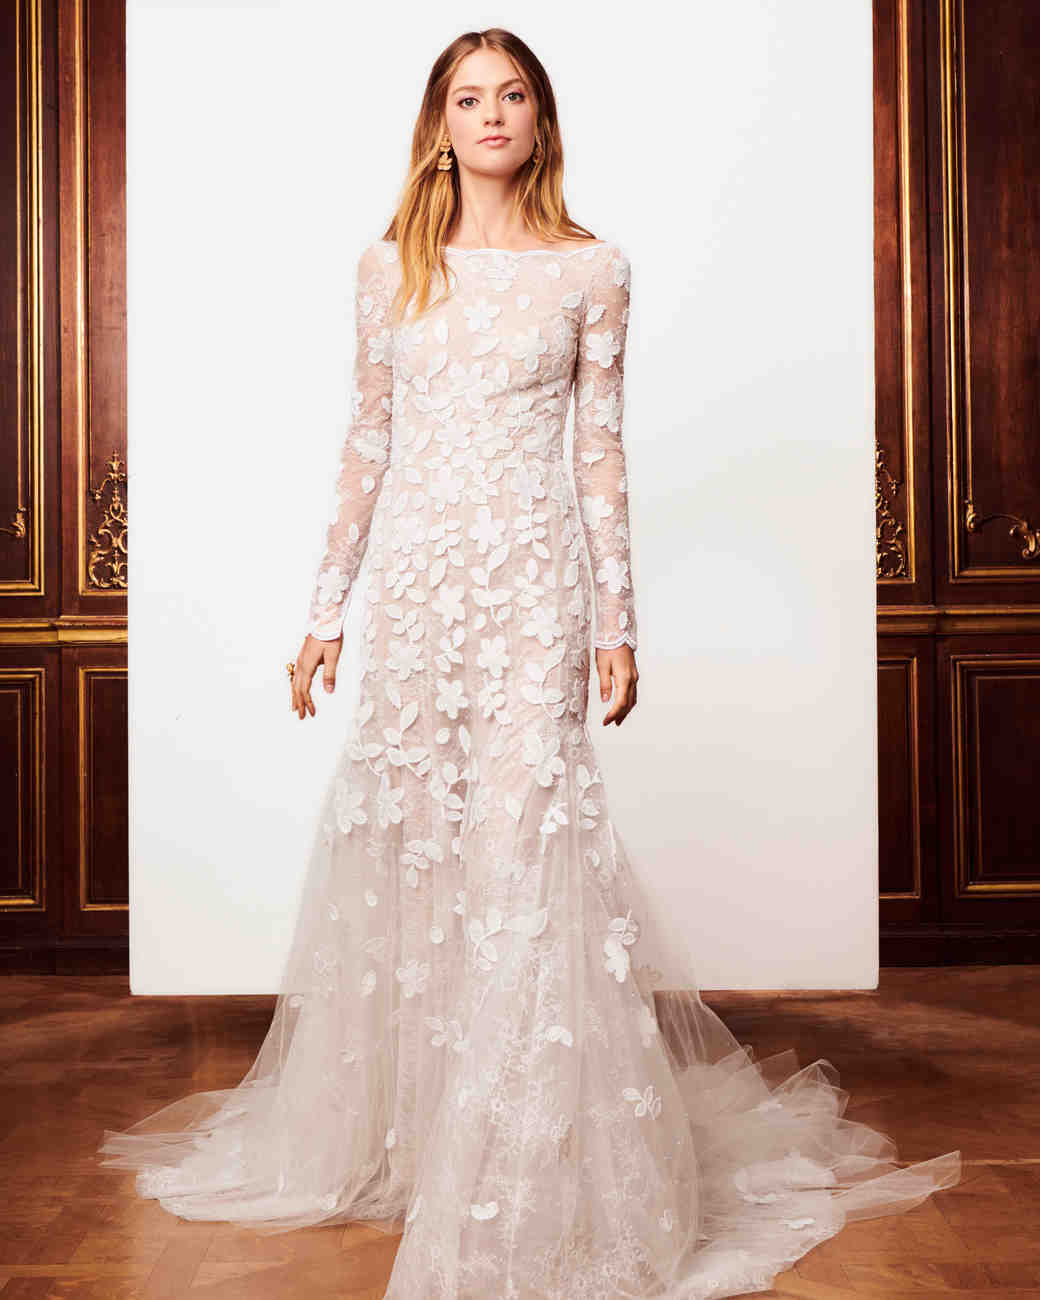 Oscar de la renta fall 2018 wedding dress collection for Where to buy oscar de la renta wedding dress